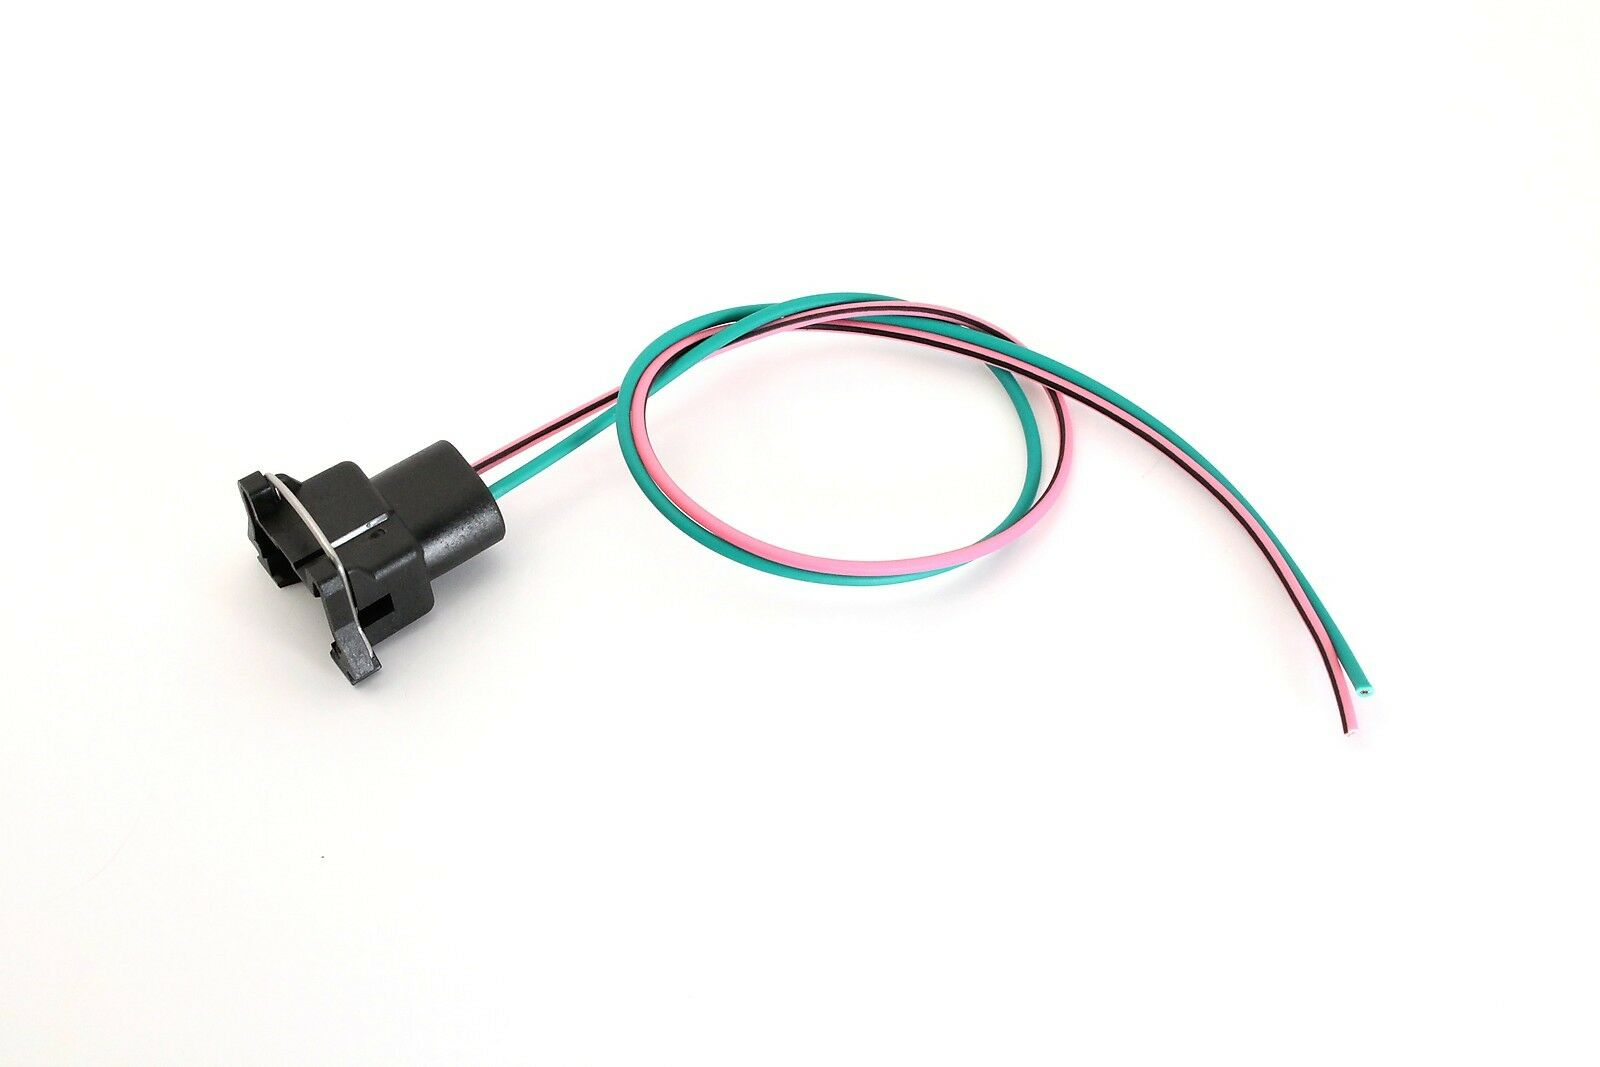 hight resolution of tpi fuel injector pigtail connector wiring 85 92 camaro firebird corvette green